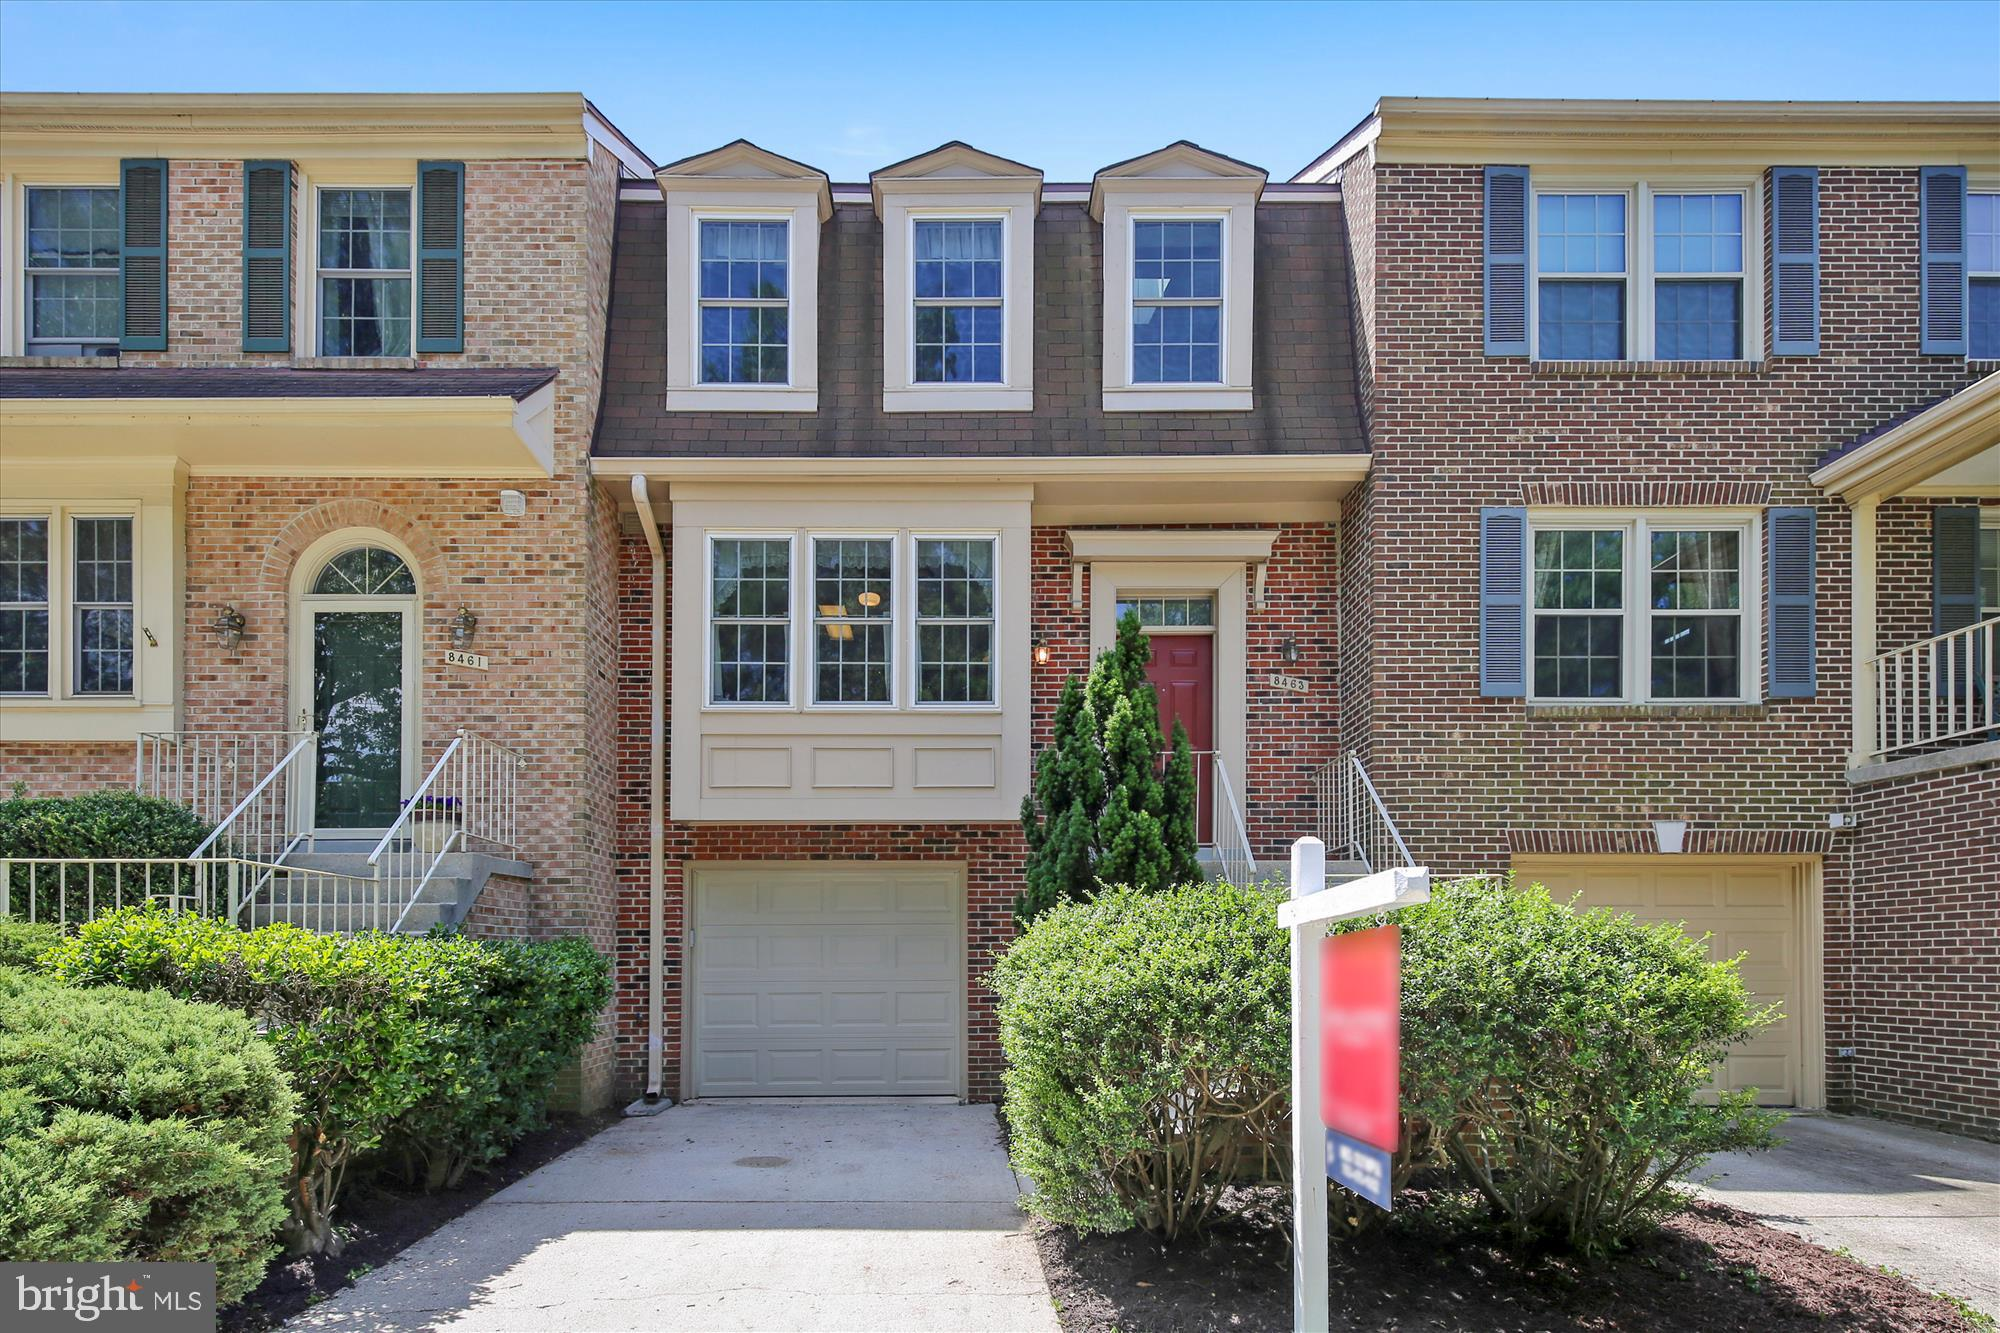 LOCATION! LOCATION! LOCATION! 3 BR'S 2 FULL BATHS, 2 HALF BATHS W/1 CAR GARAGE, DECK & PATIO*EIK W/TONS OF NATURAL LIGHT* FORMAL DR W/HDWD FLOORS & CROWN MOLDING* COZY LR W/HDWD FLOORS, WB FP W/BRICK SURROUND & HEARTH* STEP OUT TO SPACIOUS DECK FROM LR* LRGE MASTER SUITE W/VAULTED CEILING & W/I CLOSET THROUGH DBLE DOORS*MASTER BATH HAS SOAKING TUB, SEPARATE SHOWER & SKYLIGHT* FINISHED LL HAS WB FP W BRICK SURROUND, SEPARATE LAUNDRY AREA, HALF BATH & STORAGE + ACCESS TO ENCLOSED PATIO* READY TO MOVE IN! RM MSMTS APPROX* ALL OFFERS NEED TO BE IN MONDAY 6/24/19 FOR REVIEW ON TUESDAY 6/25/19